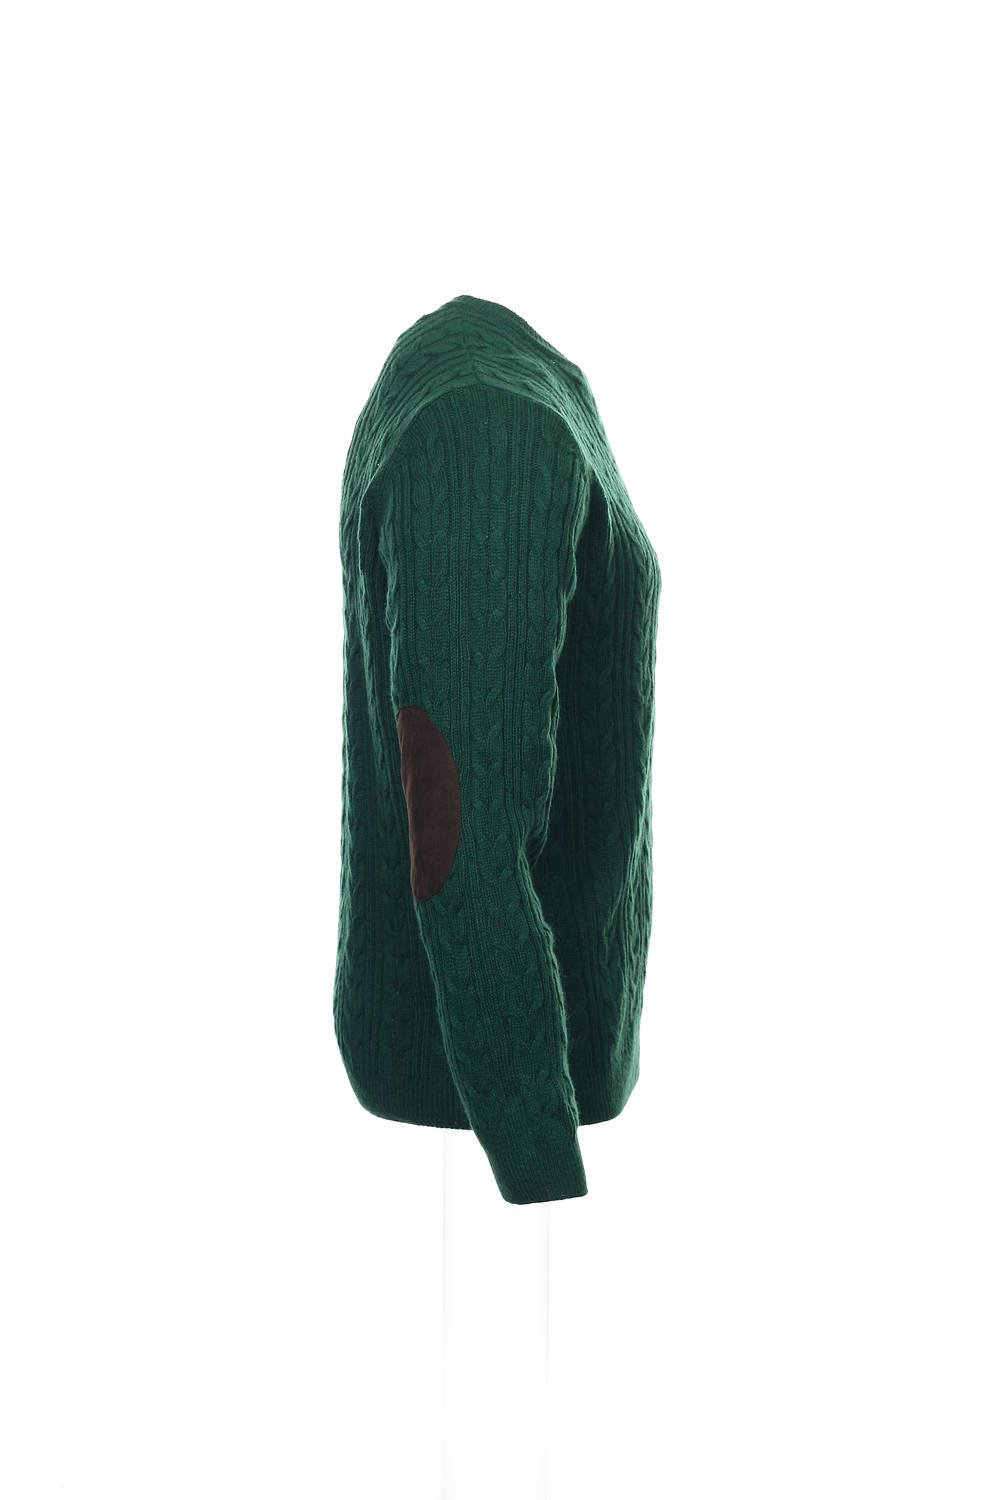 Argyle Culture Pine Green Sweater Medium by Argyleculture by Russell Simmons (Image #4)